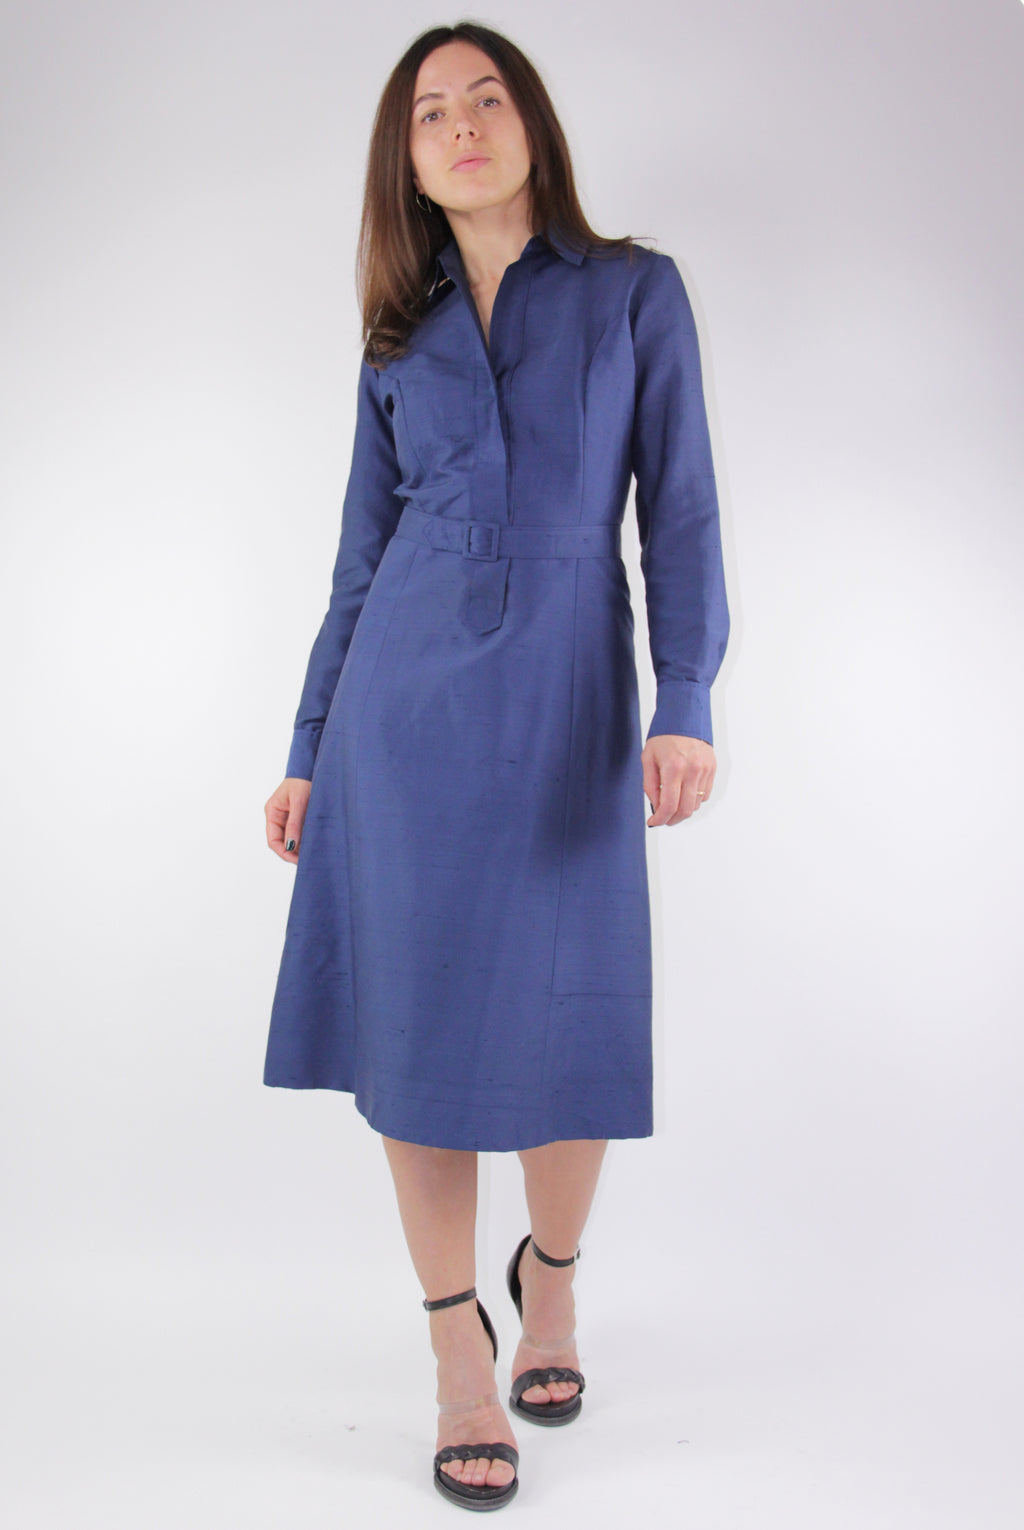 Hand Made 100% Silk Blue Midi Dress, Size S